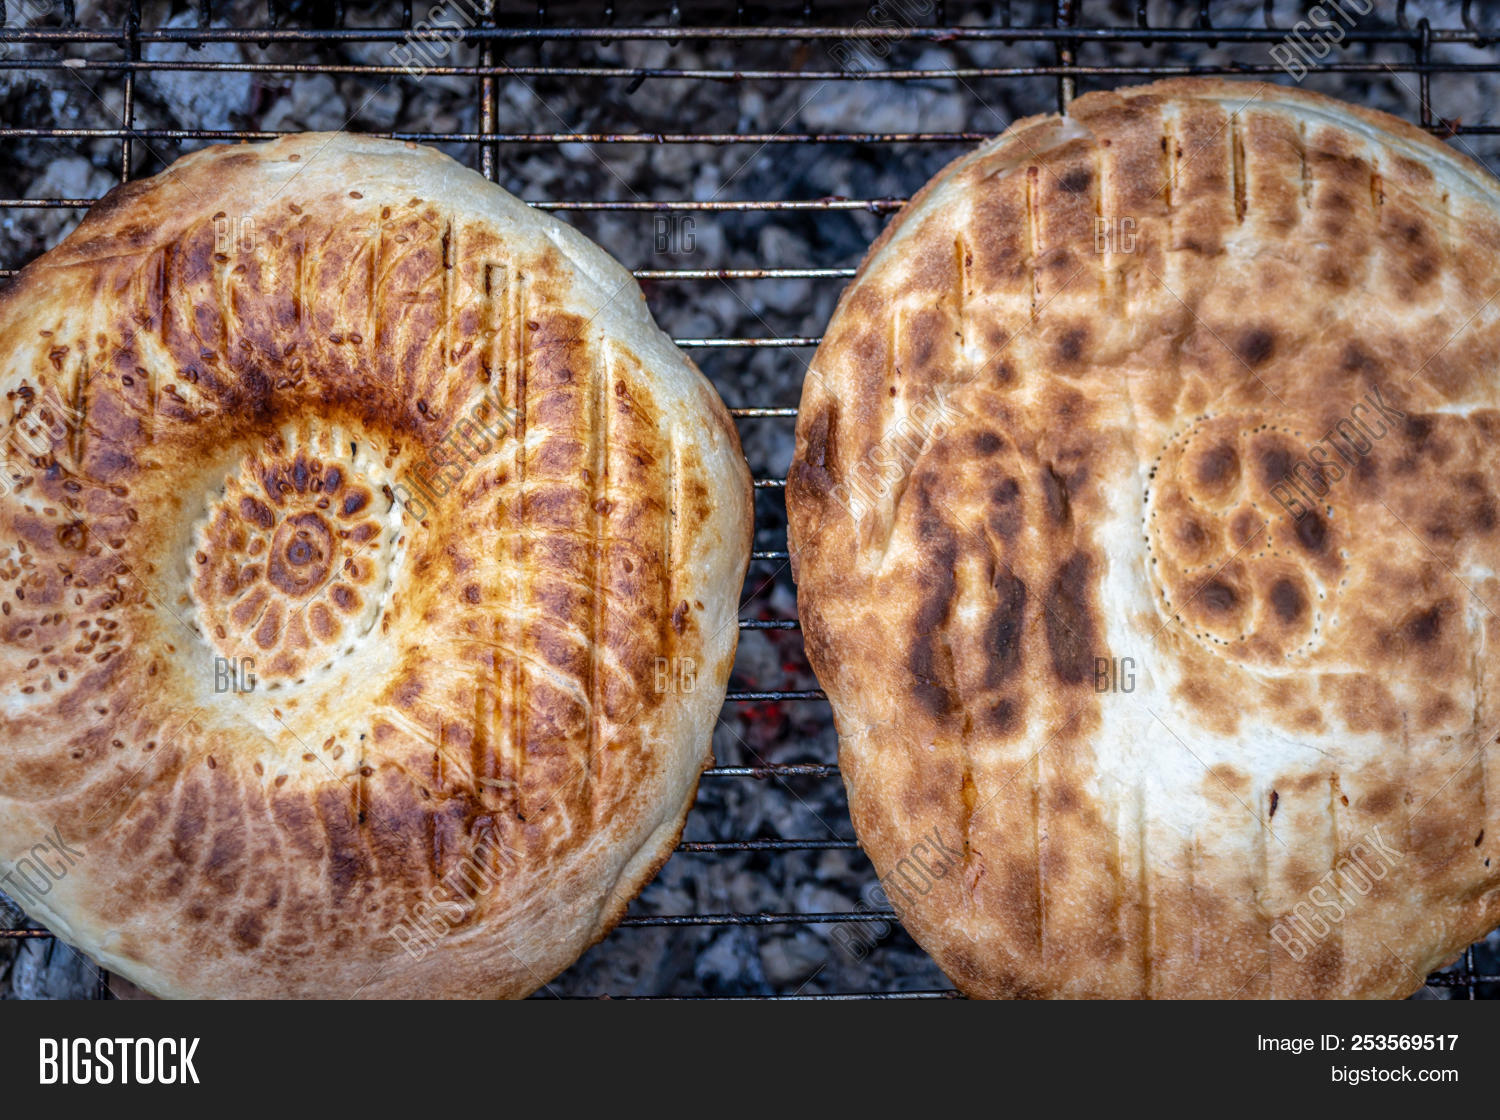 activity,ash,bake,barbecue,blaze,bonfire,bread,brick,bright,brochette,brown,burn,burnt,camp,campfire,coal,cook,cooking,dinner,eating,effect,embers,energy,fashion,fashioned,fire,fireplace,firewood,flame,food,grill,hearth,heat,hot,italian,log,meal,natural,old,old-fashioned,open,oven,pizza,restaurant,roast,roasting,traditional,warm,wood,wood-fire